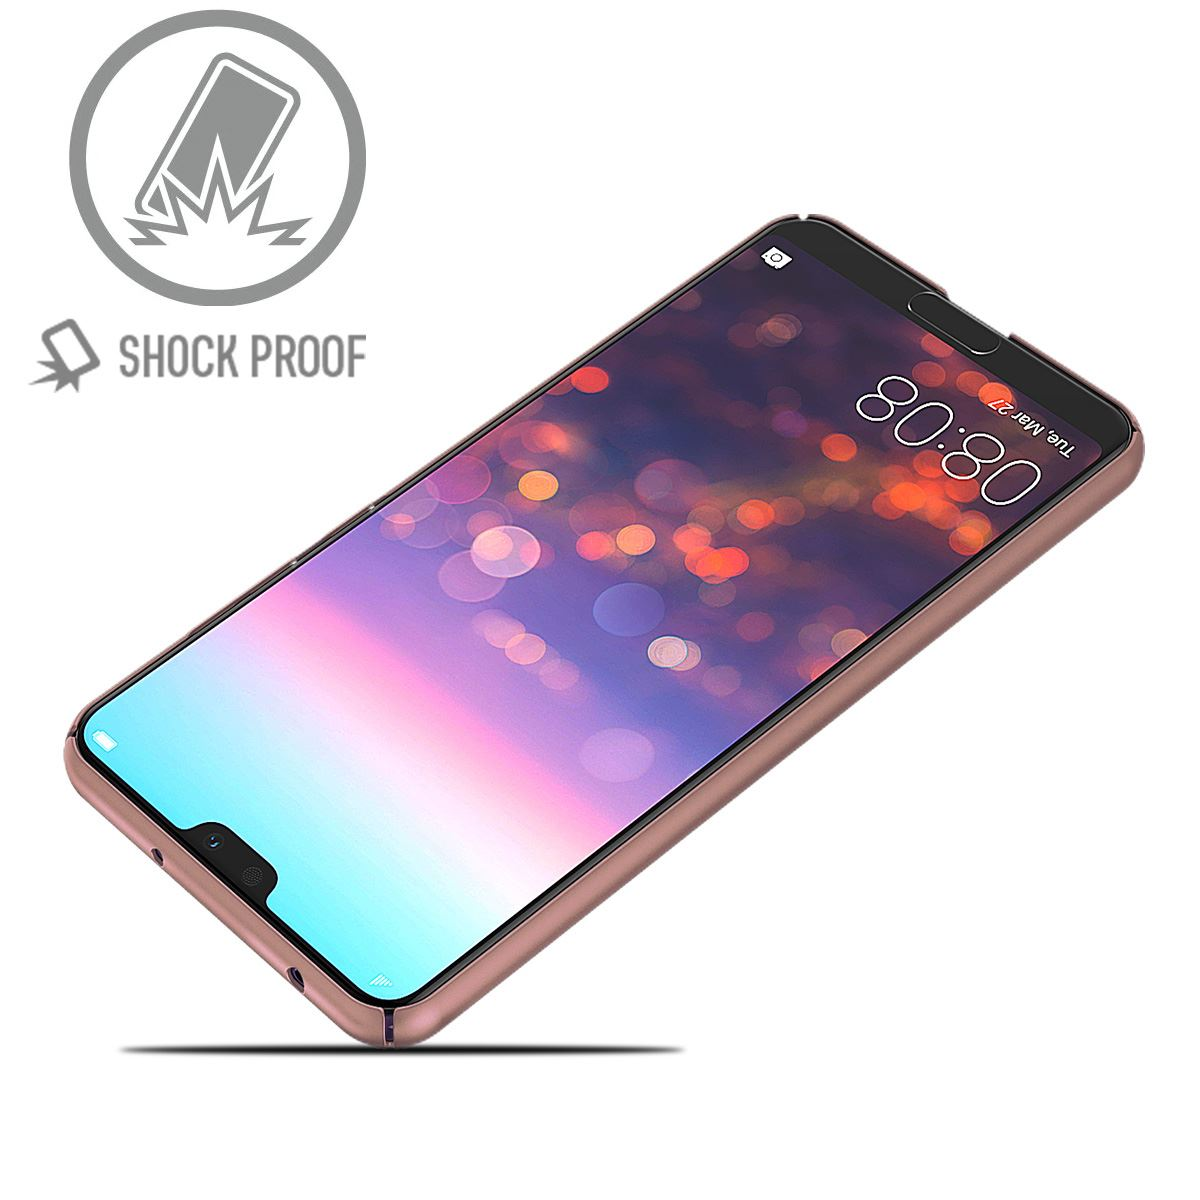 Luxury-Protective-Slim-Thin-Hard-Back-Case-Cover-For-Huawei-P20-Pro-P10-P-Smart thumbnail 34